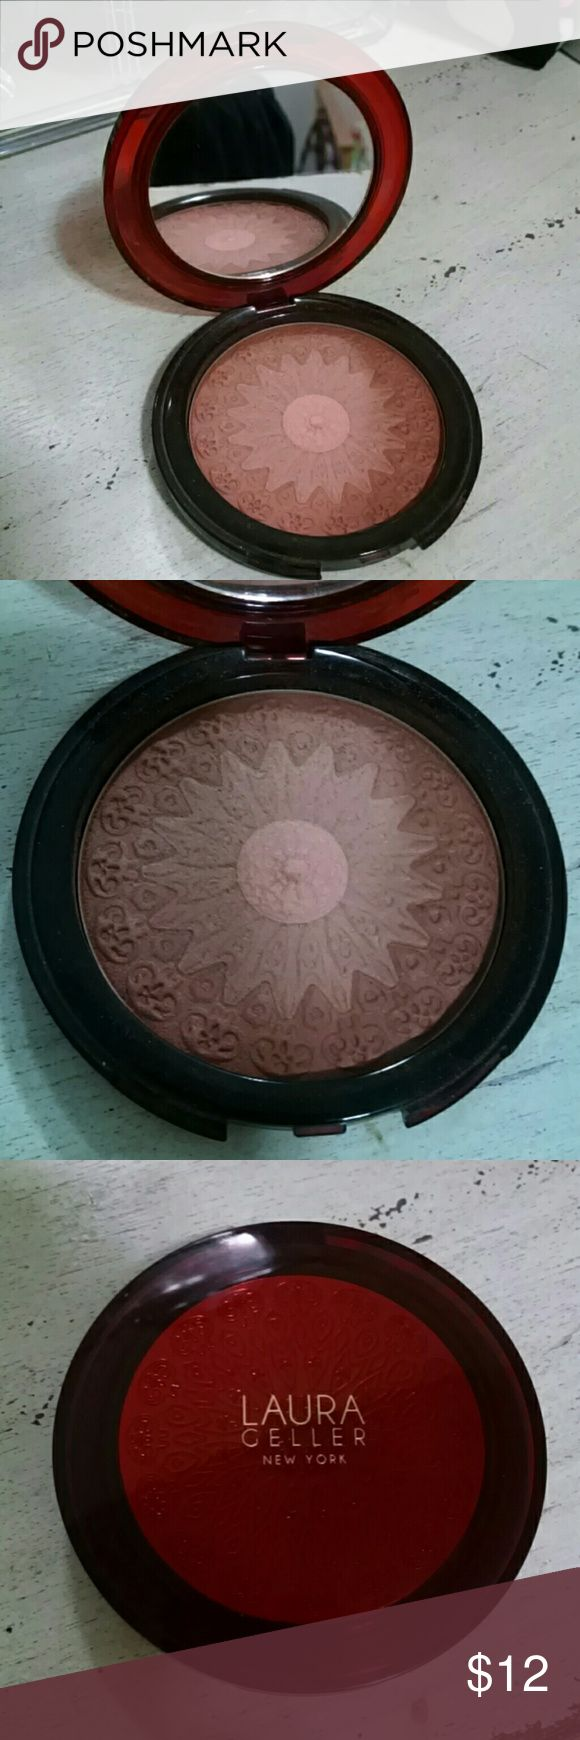 Laura Geller Moroccan Bronzer From the Laura Geller Mediterranean Set, this is a beautiful baked bronzer. It has a slight shimmer. Brightens up your face, the perfect sun-kissed look.  Mirror compact. Barely used maybe 2 times, like new! I'm stuck on my Mac bronzer ;^) No box.100% AUTHENTIC!!! Bundle and save on shipping costs!!! Laura Geller  Makeup Bronzer